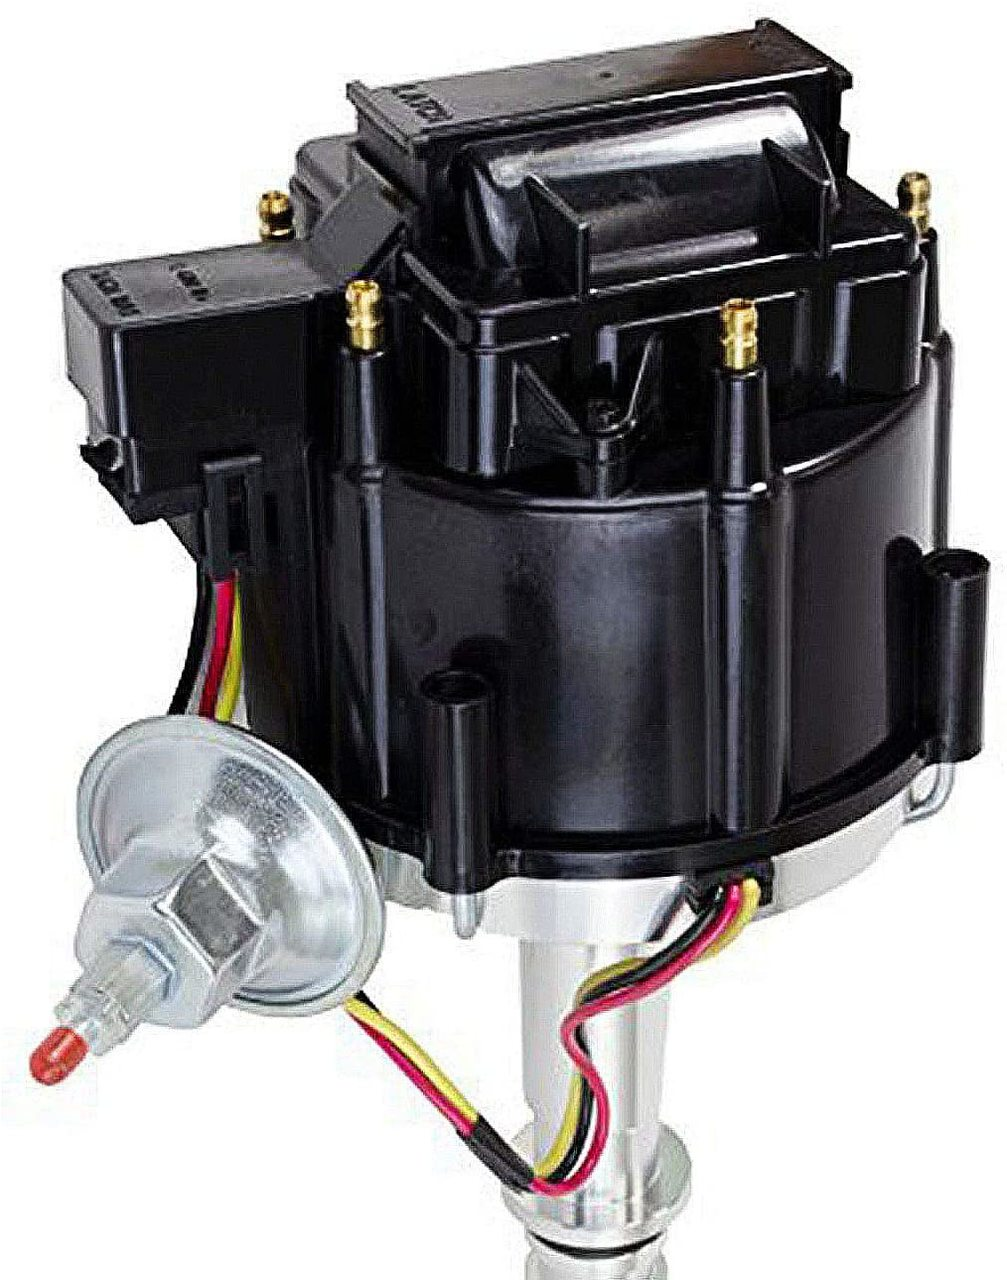 A-Team Performance 64 65 66 67 68 FORD MUSTANG STRAIGHT 6 CYL 170 200 HEI DISTRIBUTOR 5/16 Hex Shaft Black